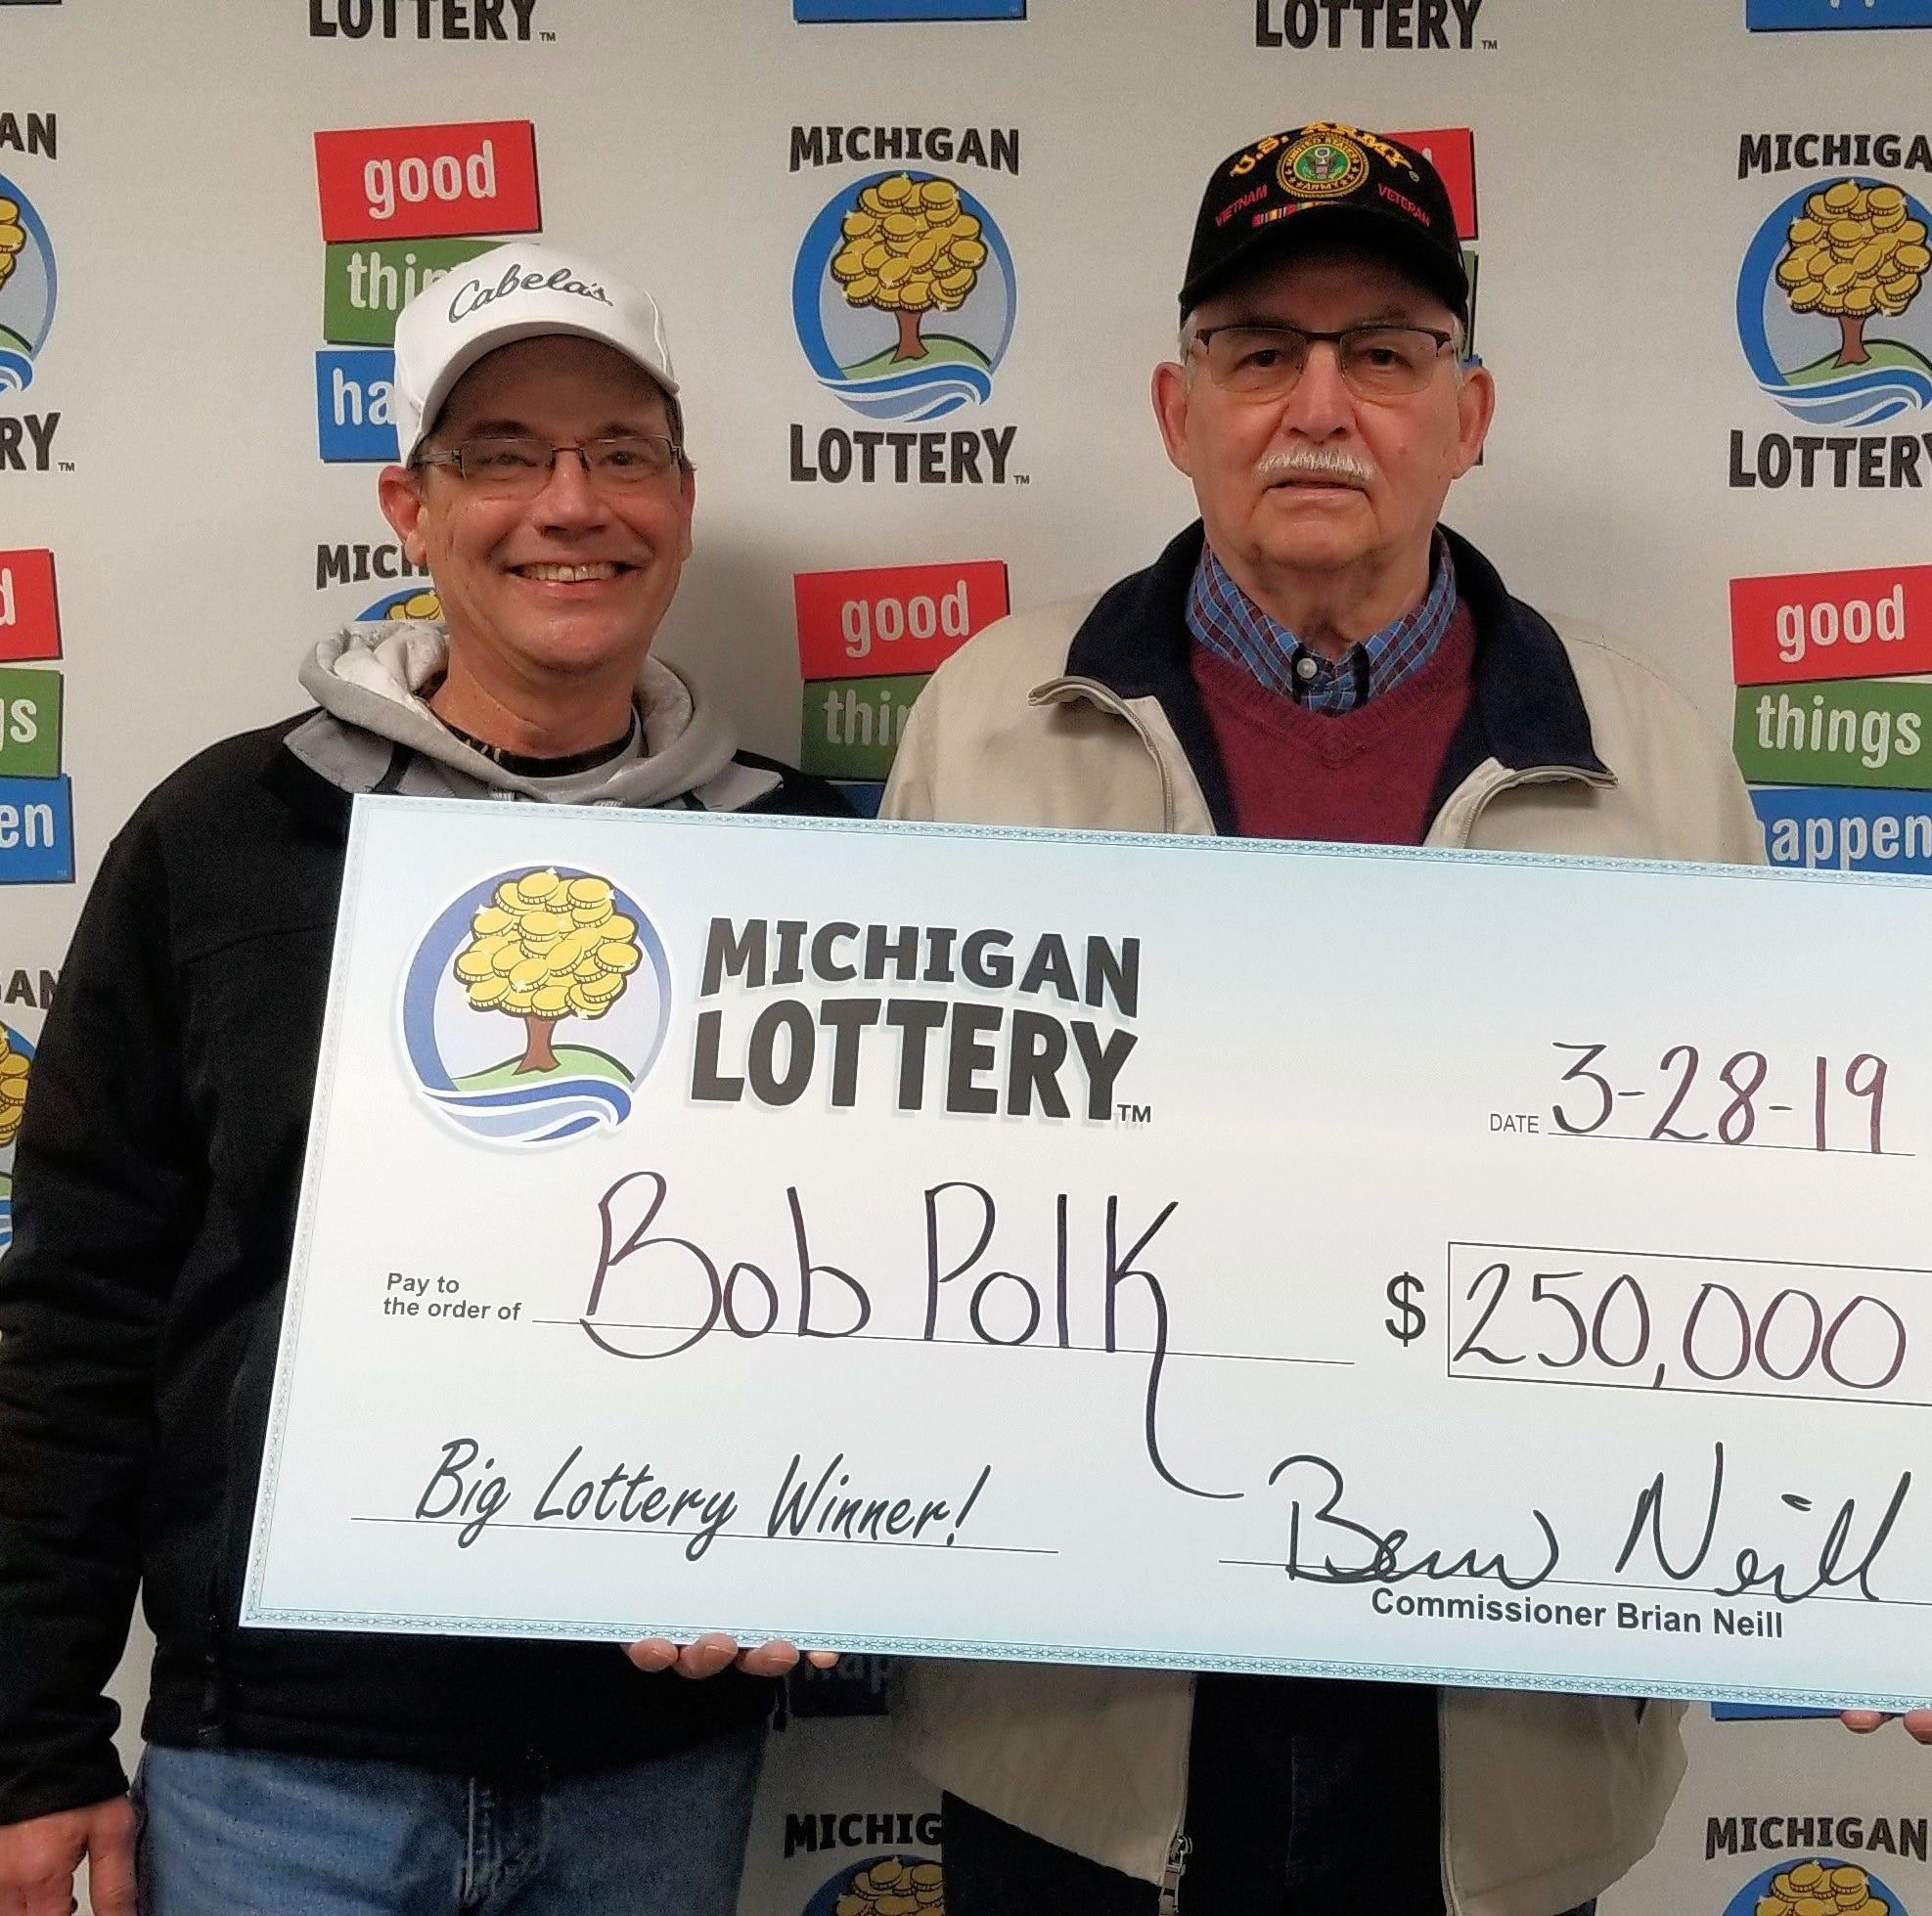 St. Clair man wins $250,000 Michigan Lottery prize